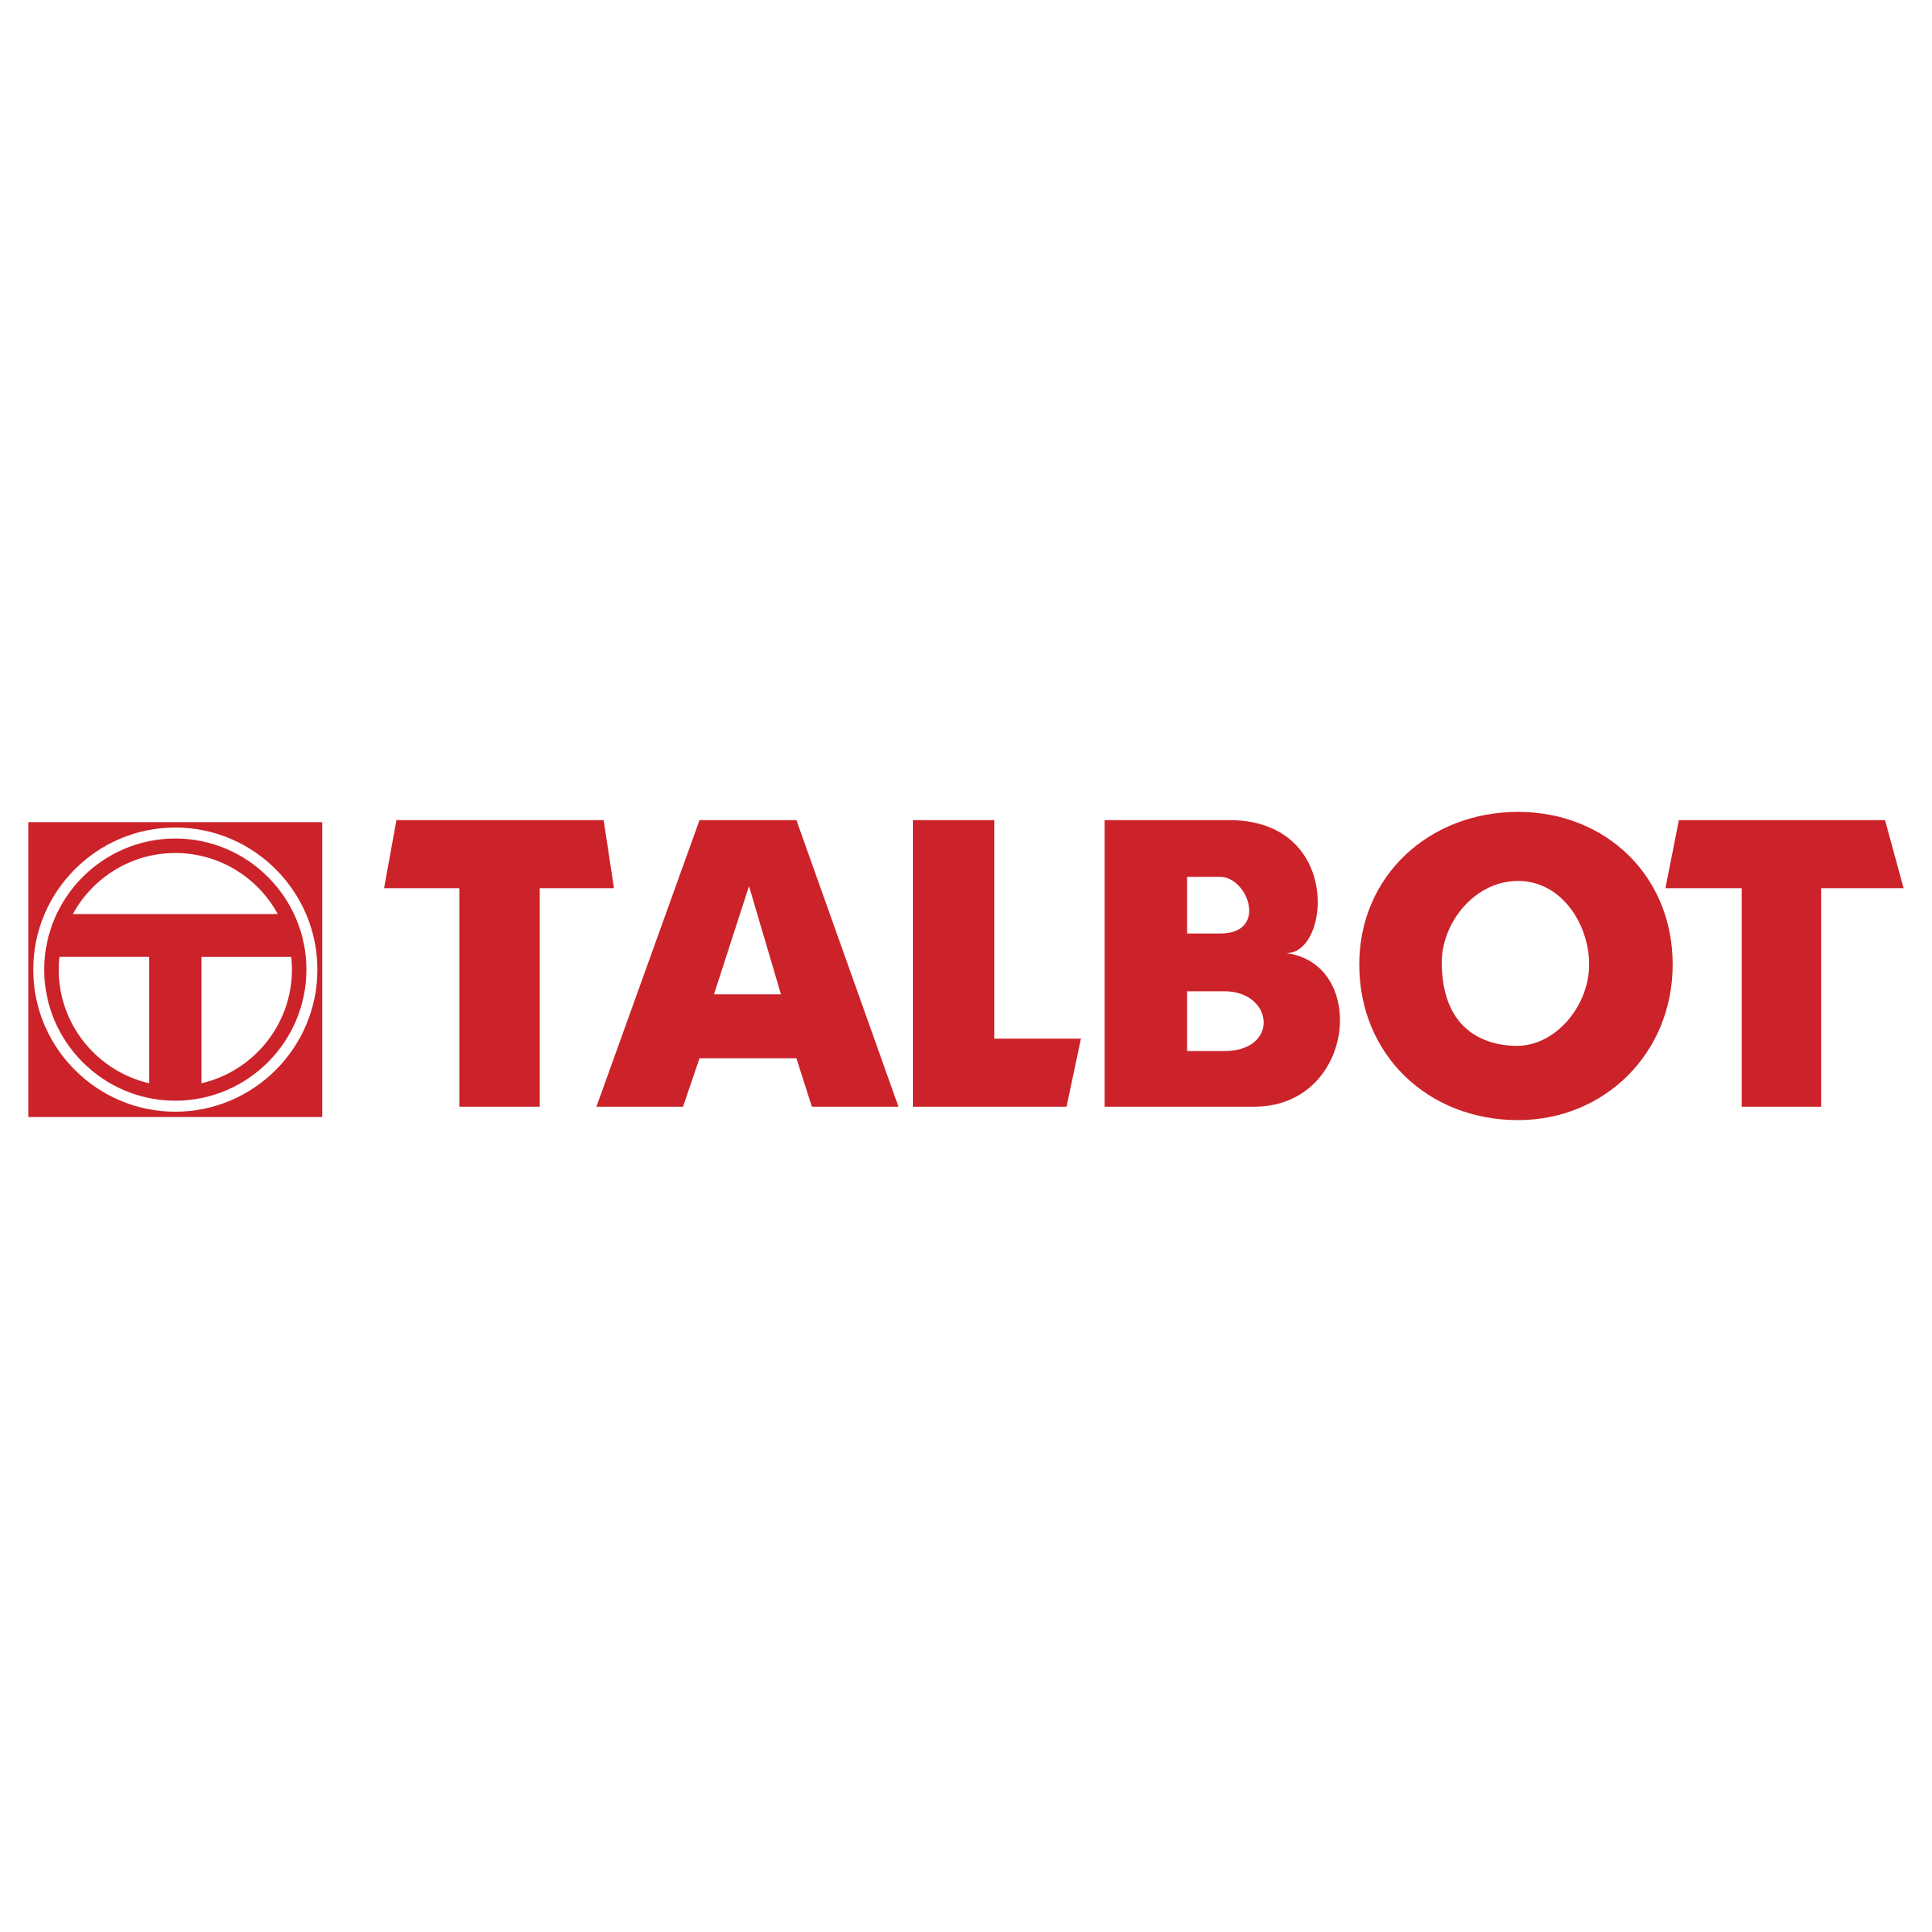 Talbot/Other